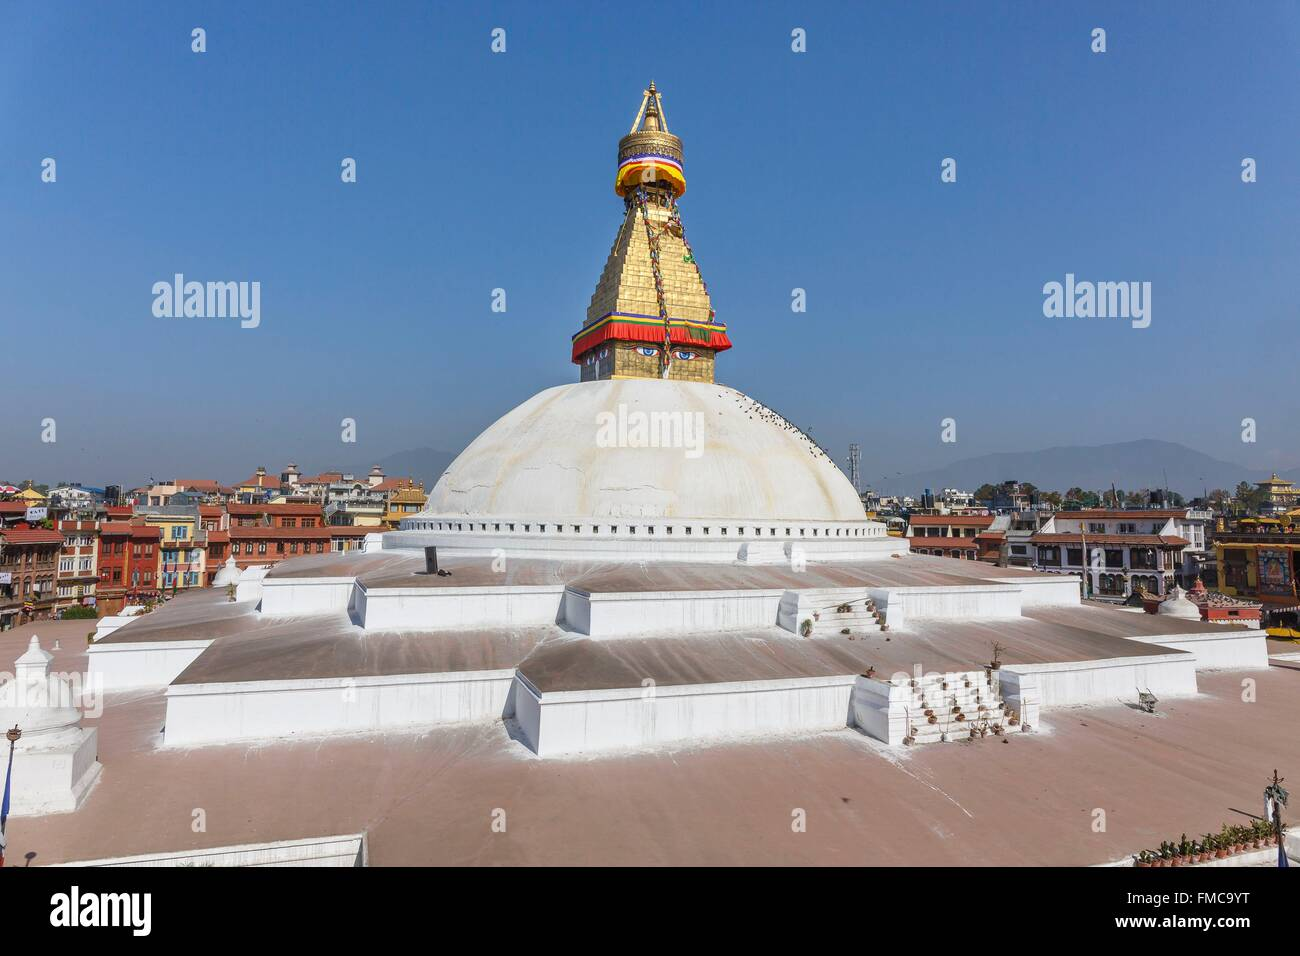 Nepal, Bagmati zone, Boudhanath, listed as World Heritage by UNESCO, the stupa - Stock Image